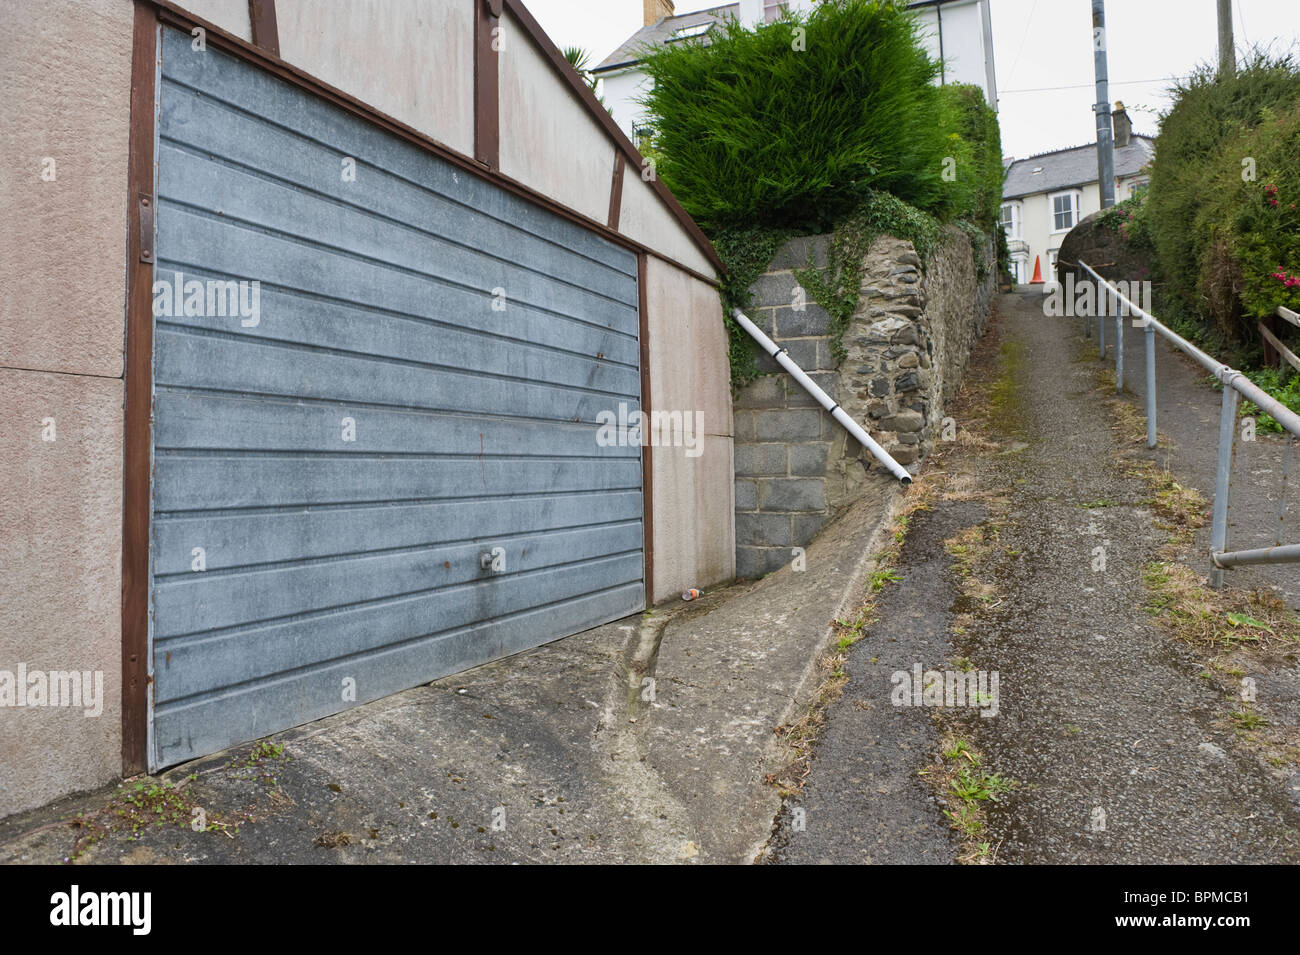 Garage and footpath wth handrail on backstreet in coastal town of New Quay Ceredigion West Wales UK - Stock Image